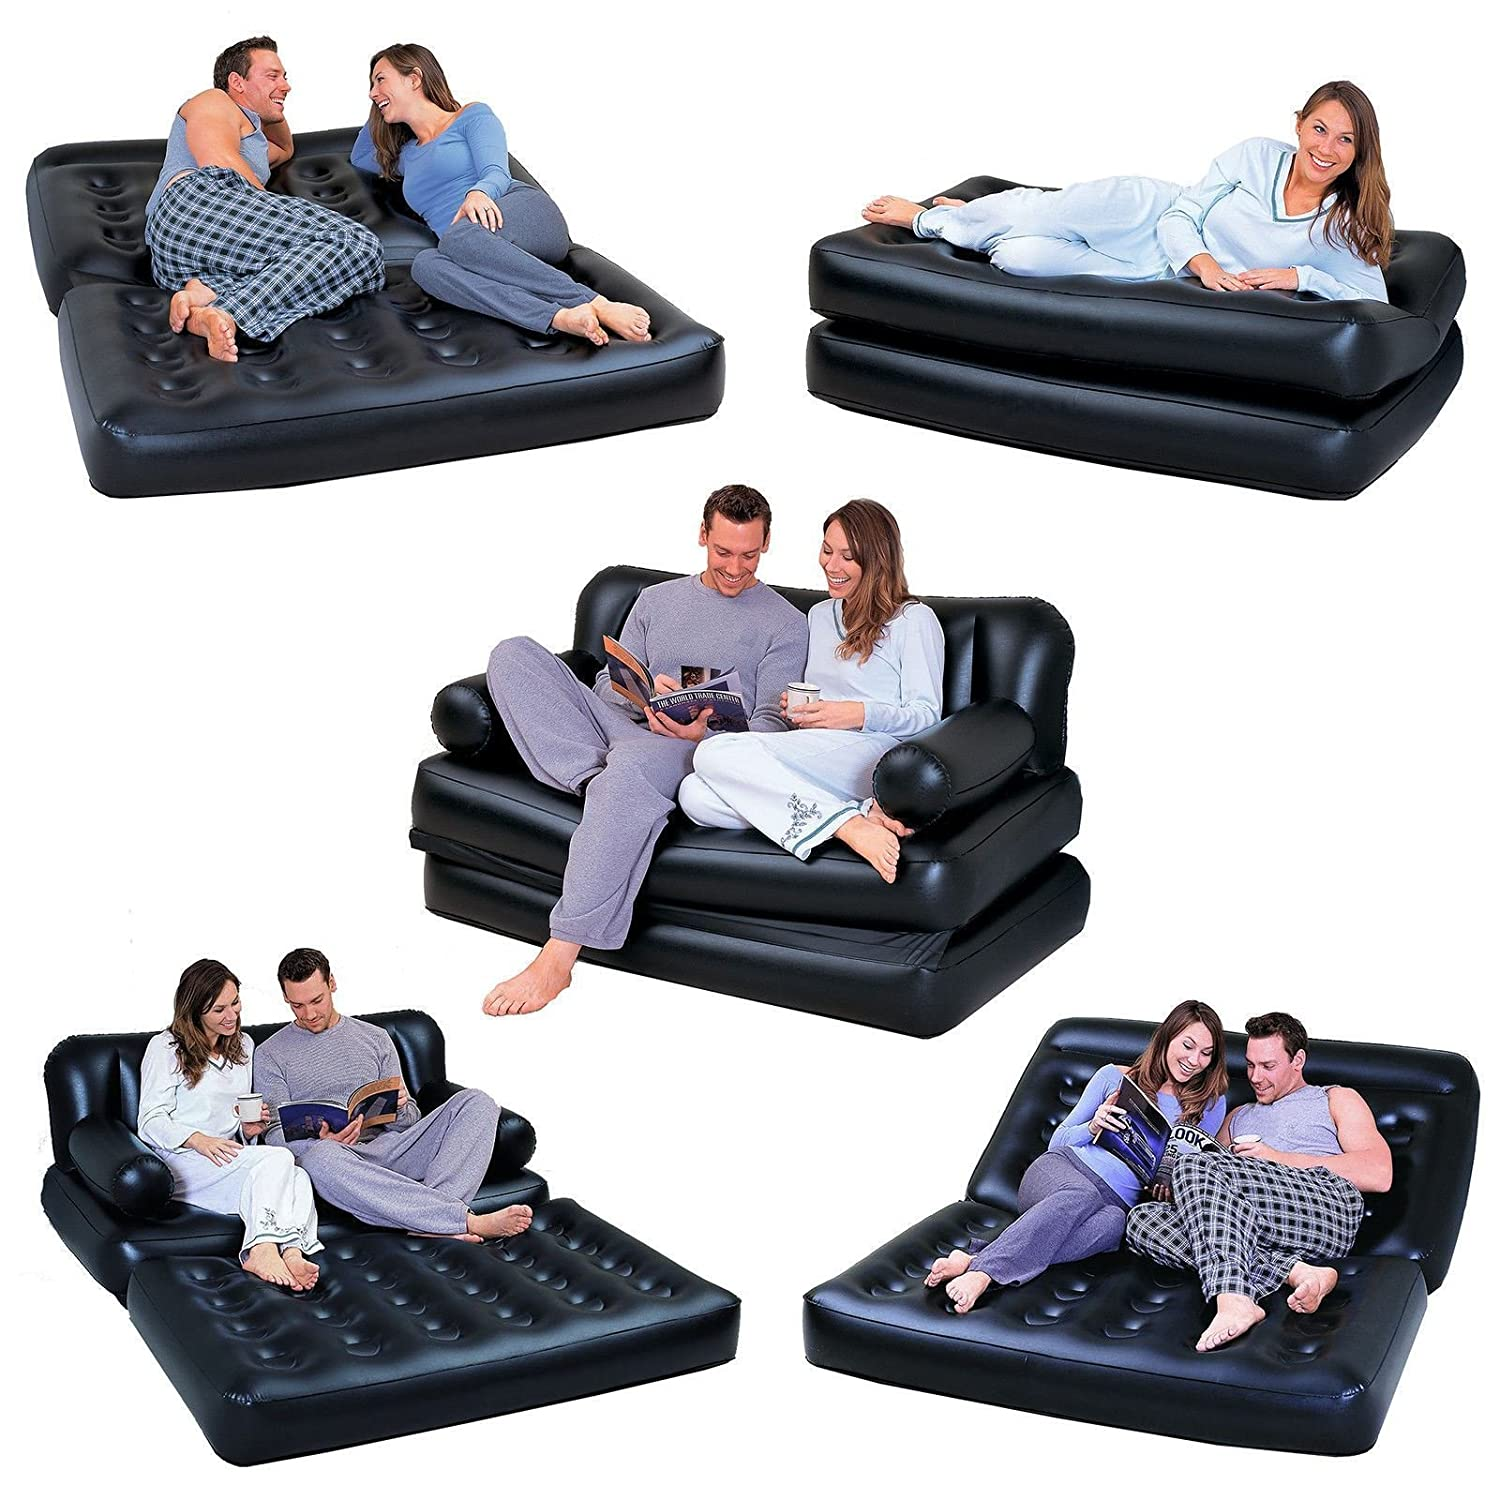 8a972545c91 NEW 5 IN 1 DOUBLE BLACK INFLATABLE AIR SOFA CHAIR COUCH LOUNGER BED MATTRESS   Amazon.co.uk  Kitchen   Home